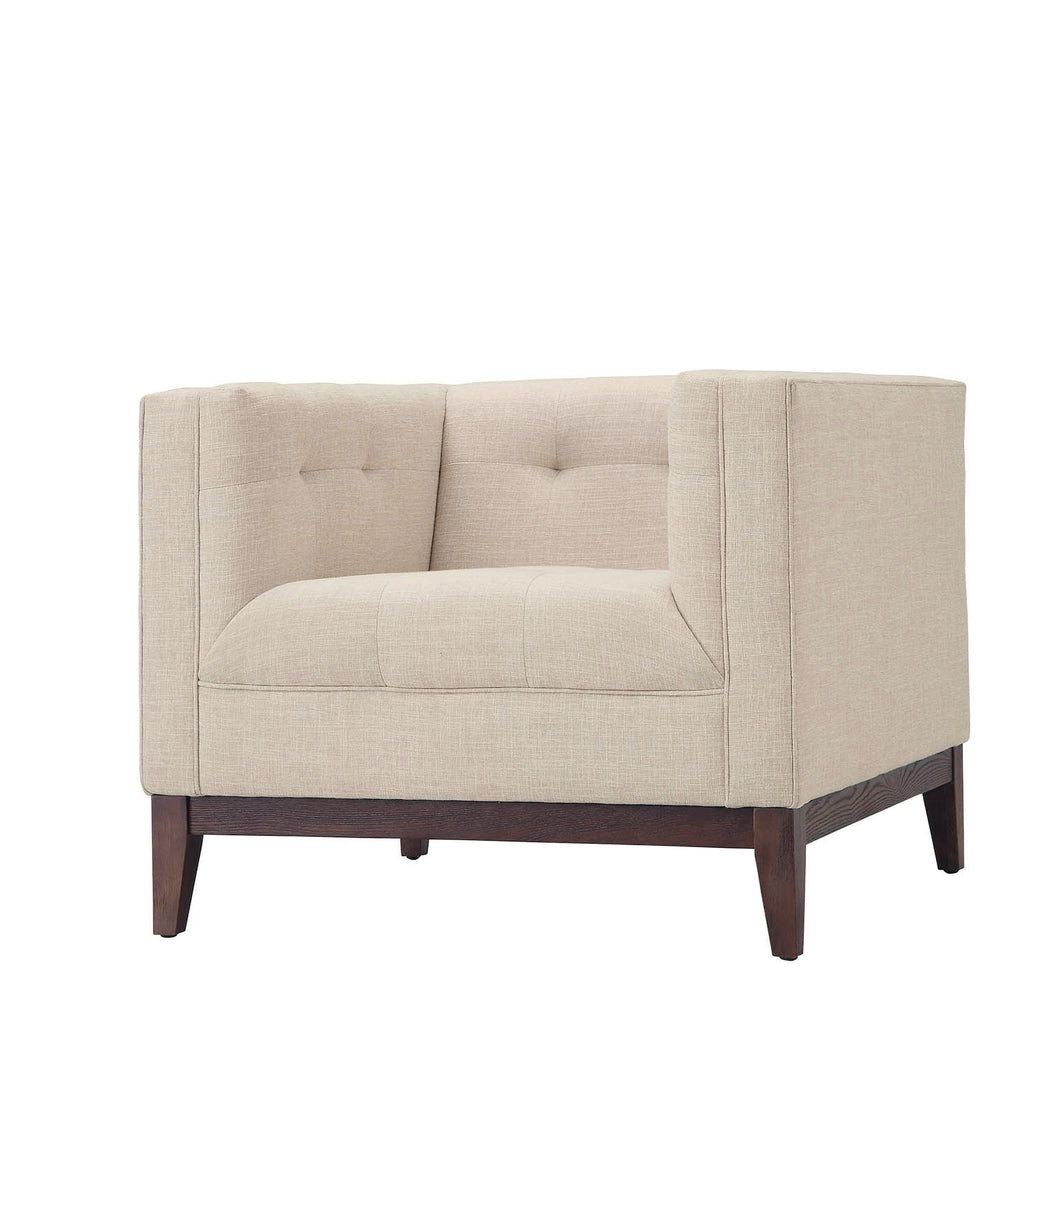 Huntington Lounge Chair in Beige